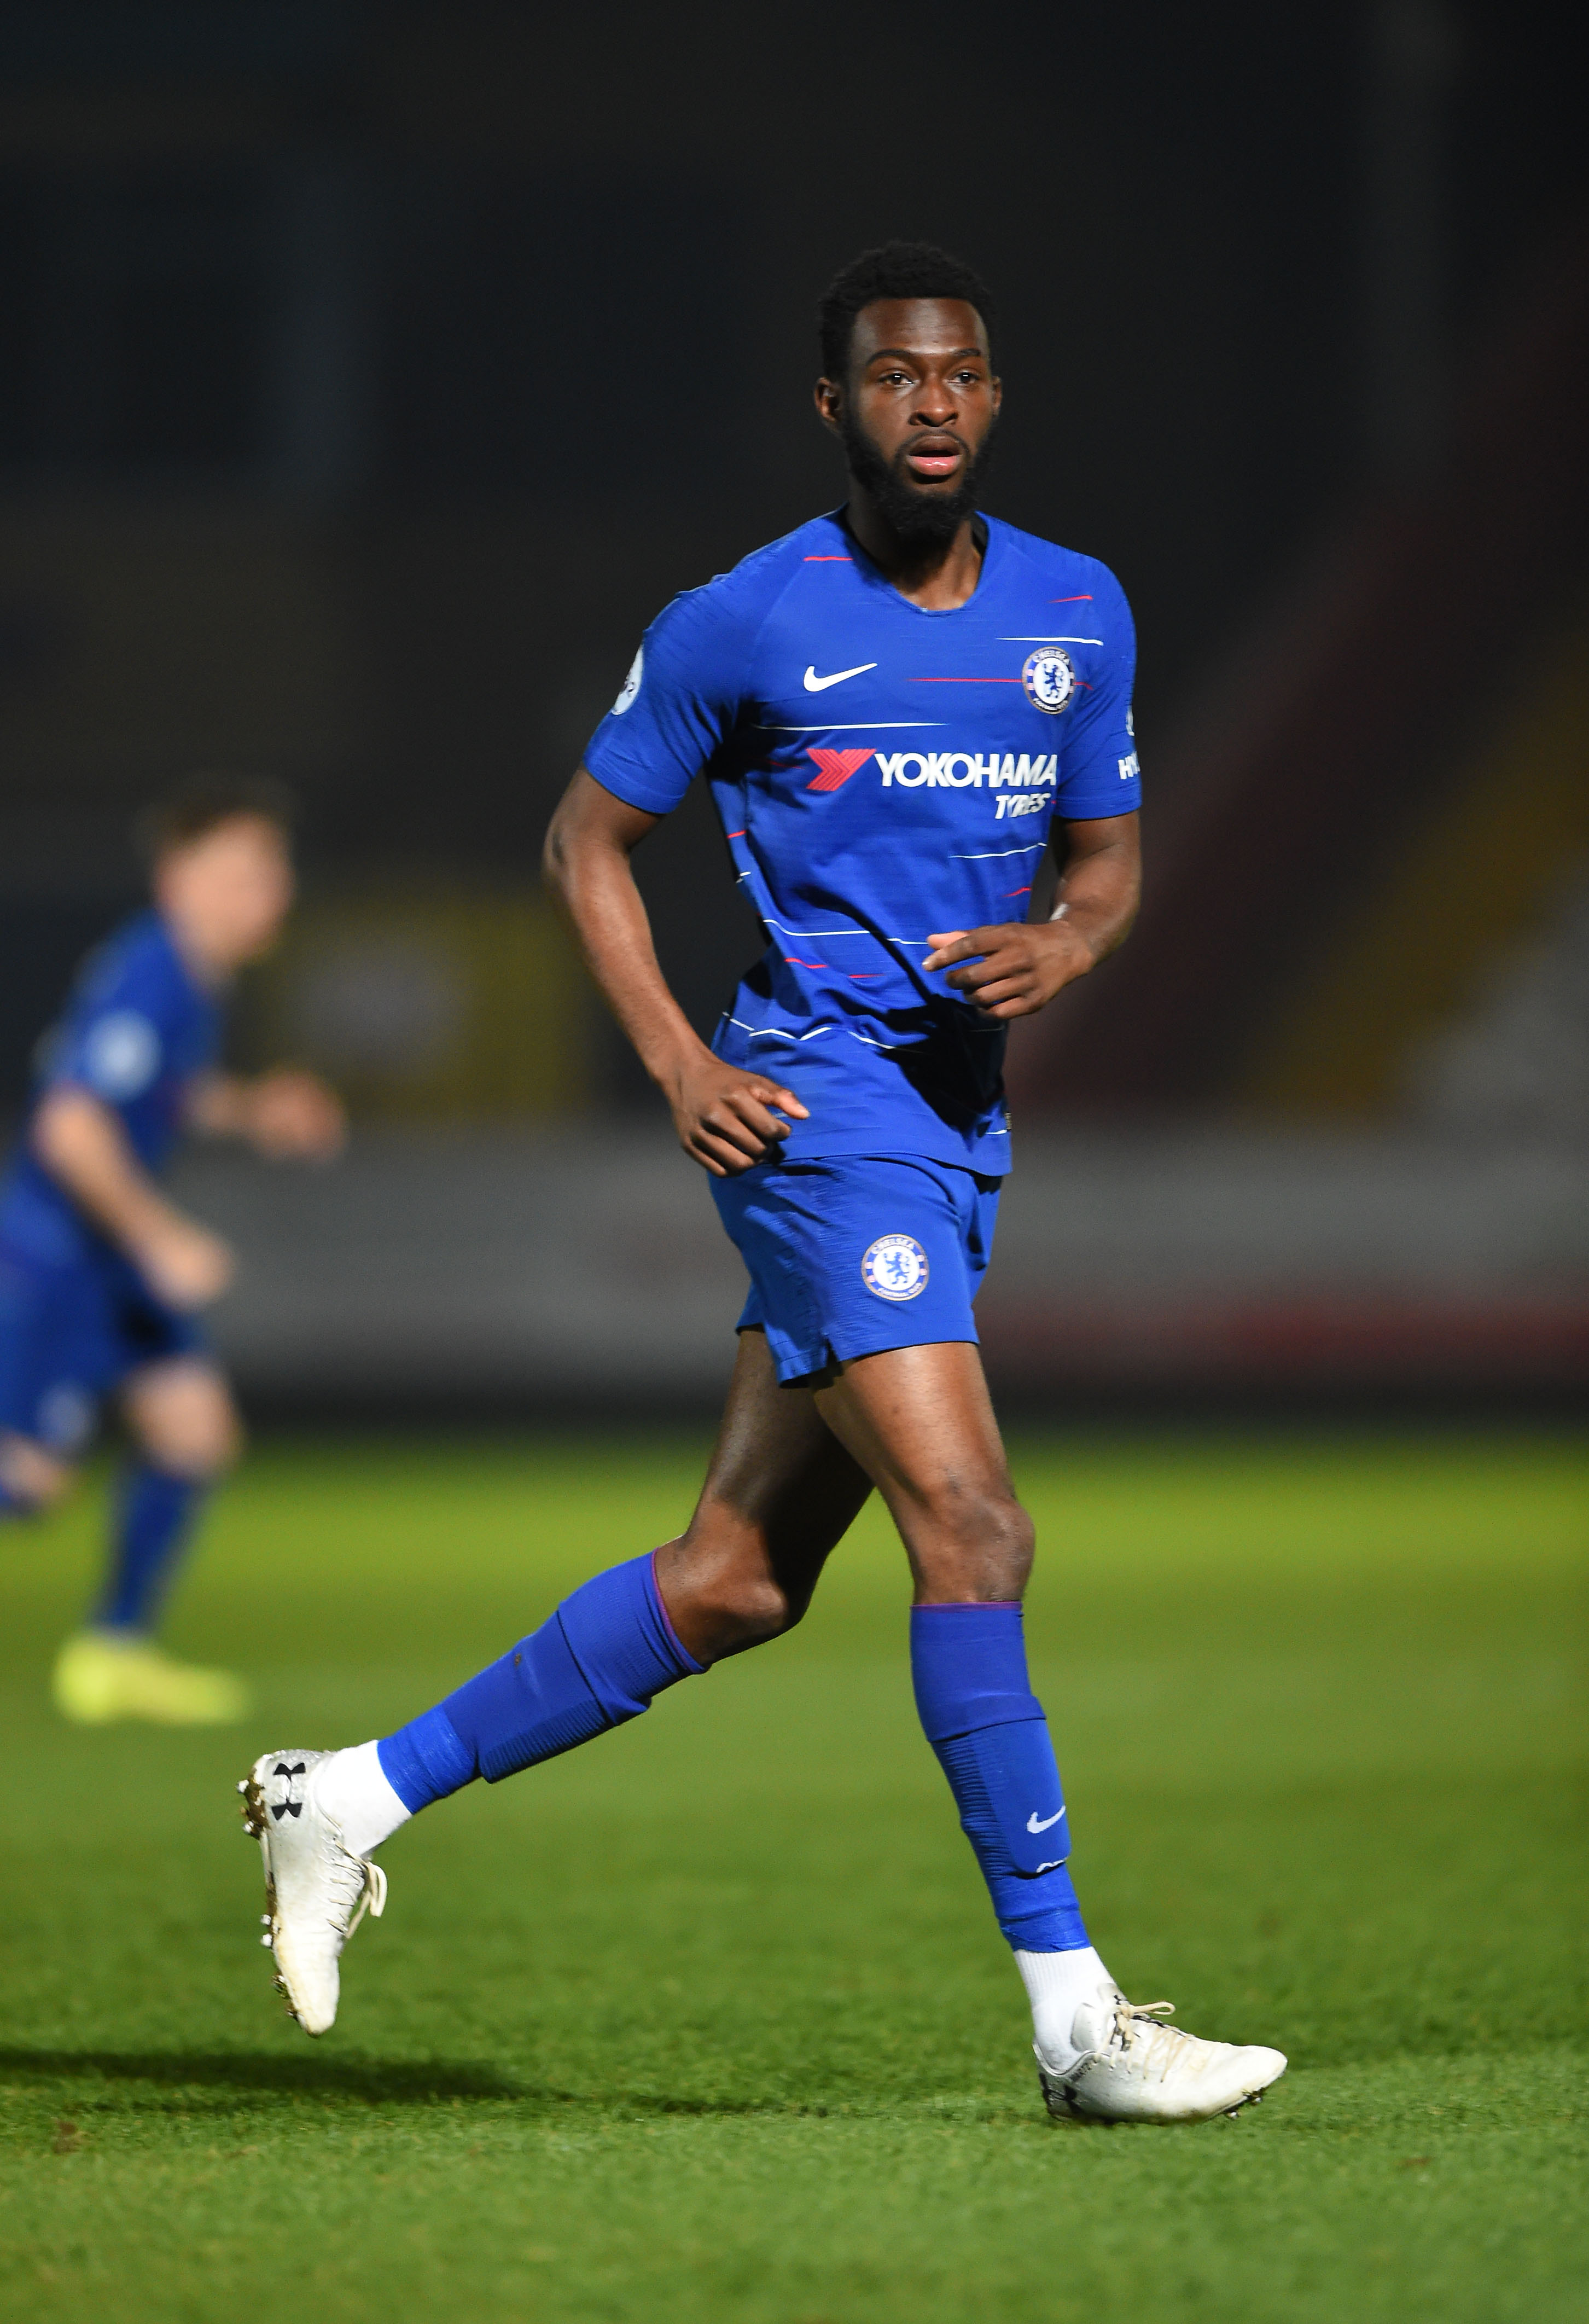 Official: Martell Taylor-Crossdale joins Fulham after Chelsea departure